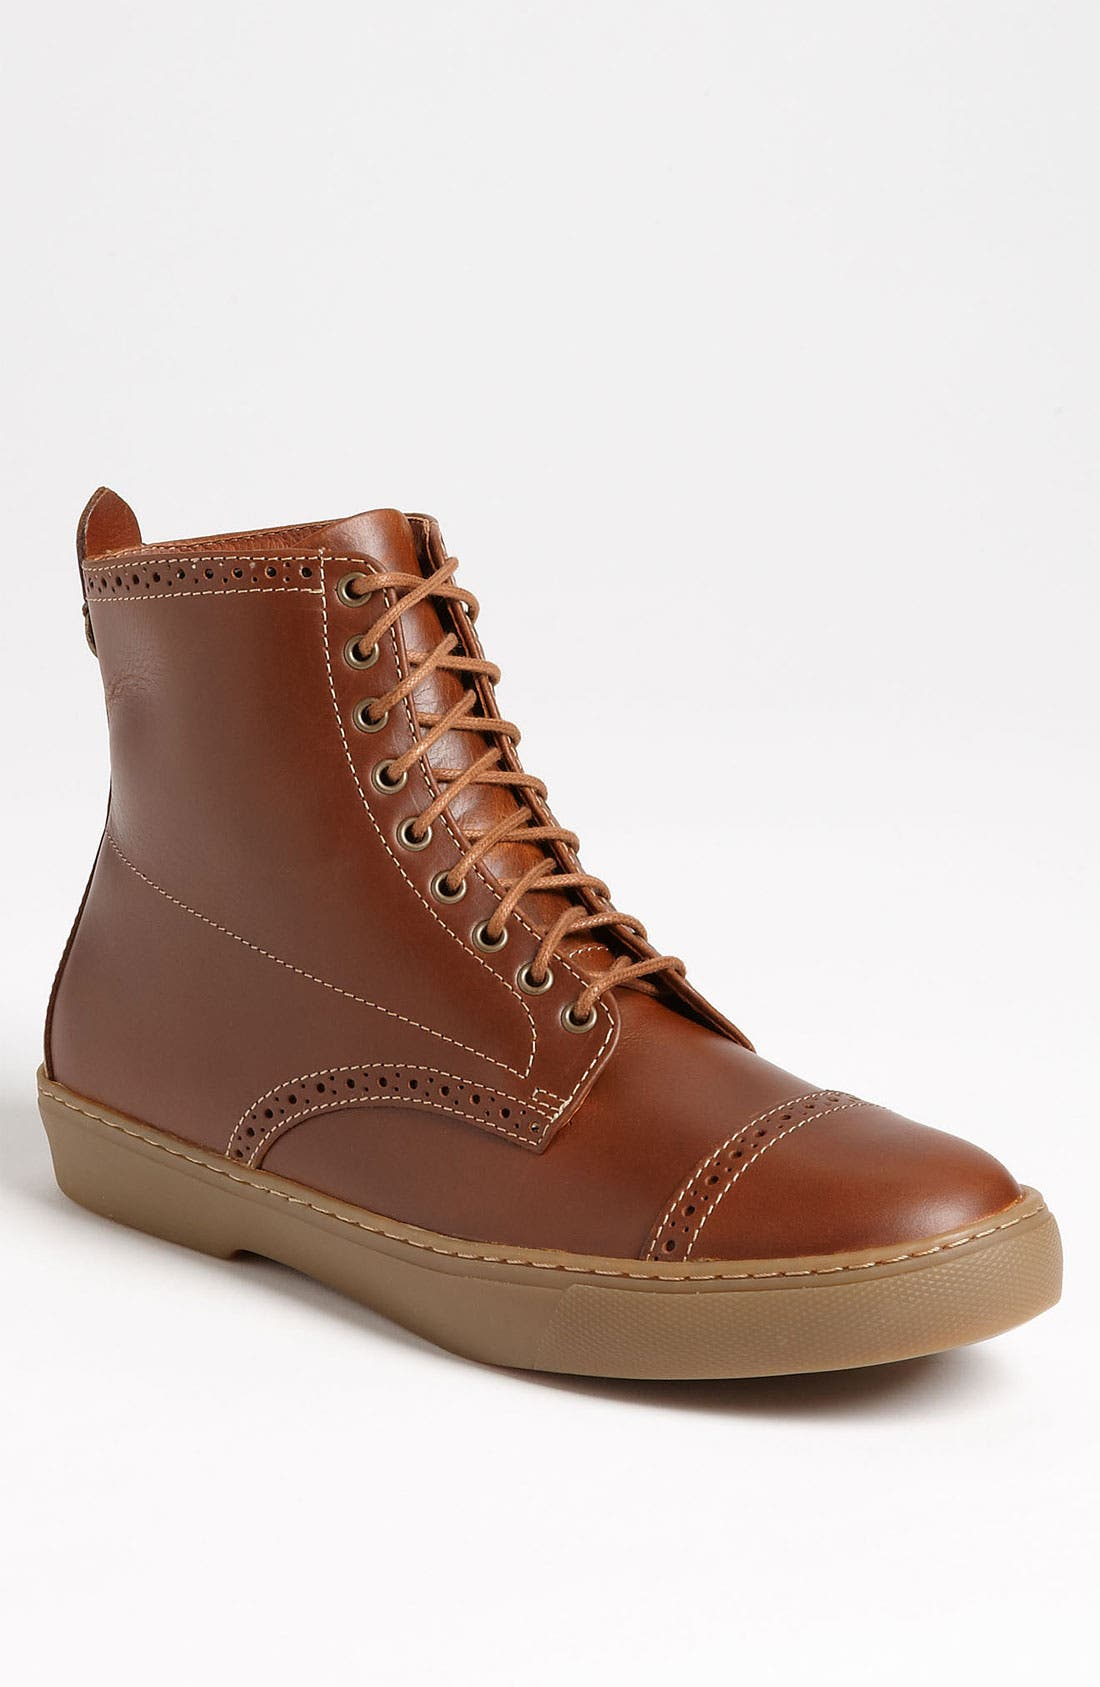 Alternate Image 1 Selected - Fred Perry 'Donahue' Cap Toe Boot